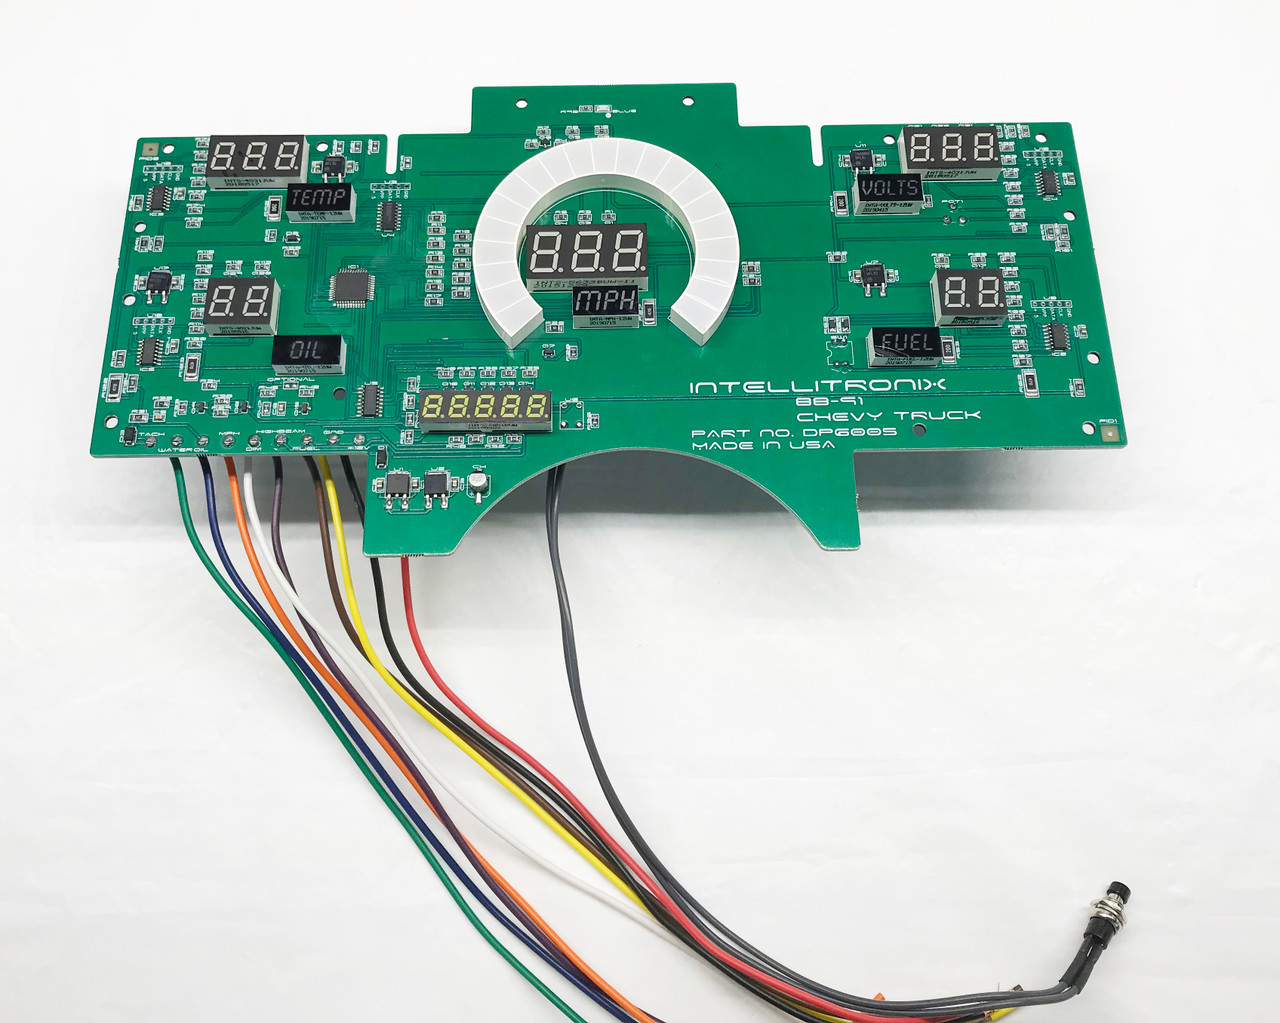 1988-91 Chevy Truck LED Digital Gauge Panel CIRCUIT BOARD